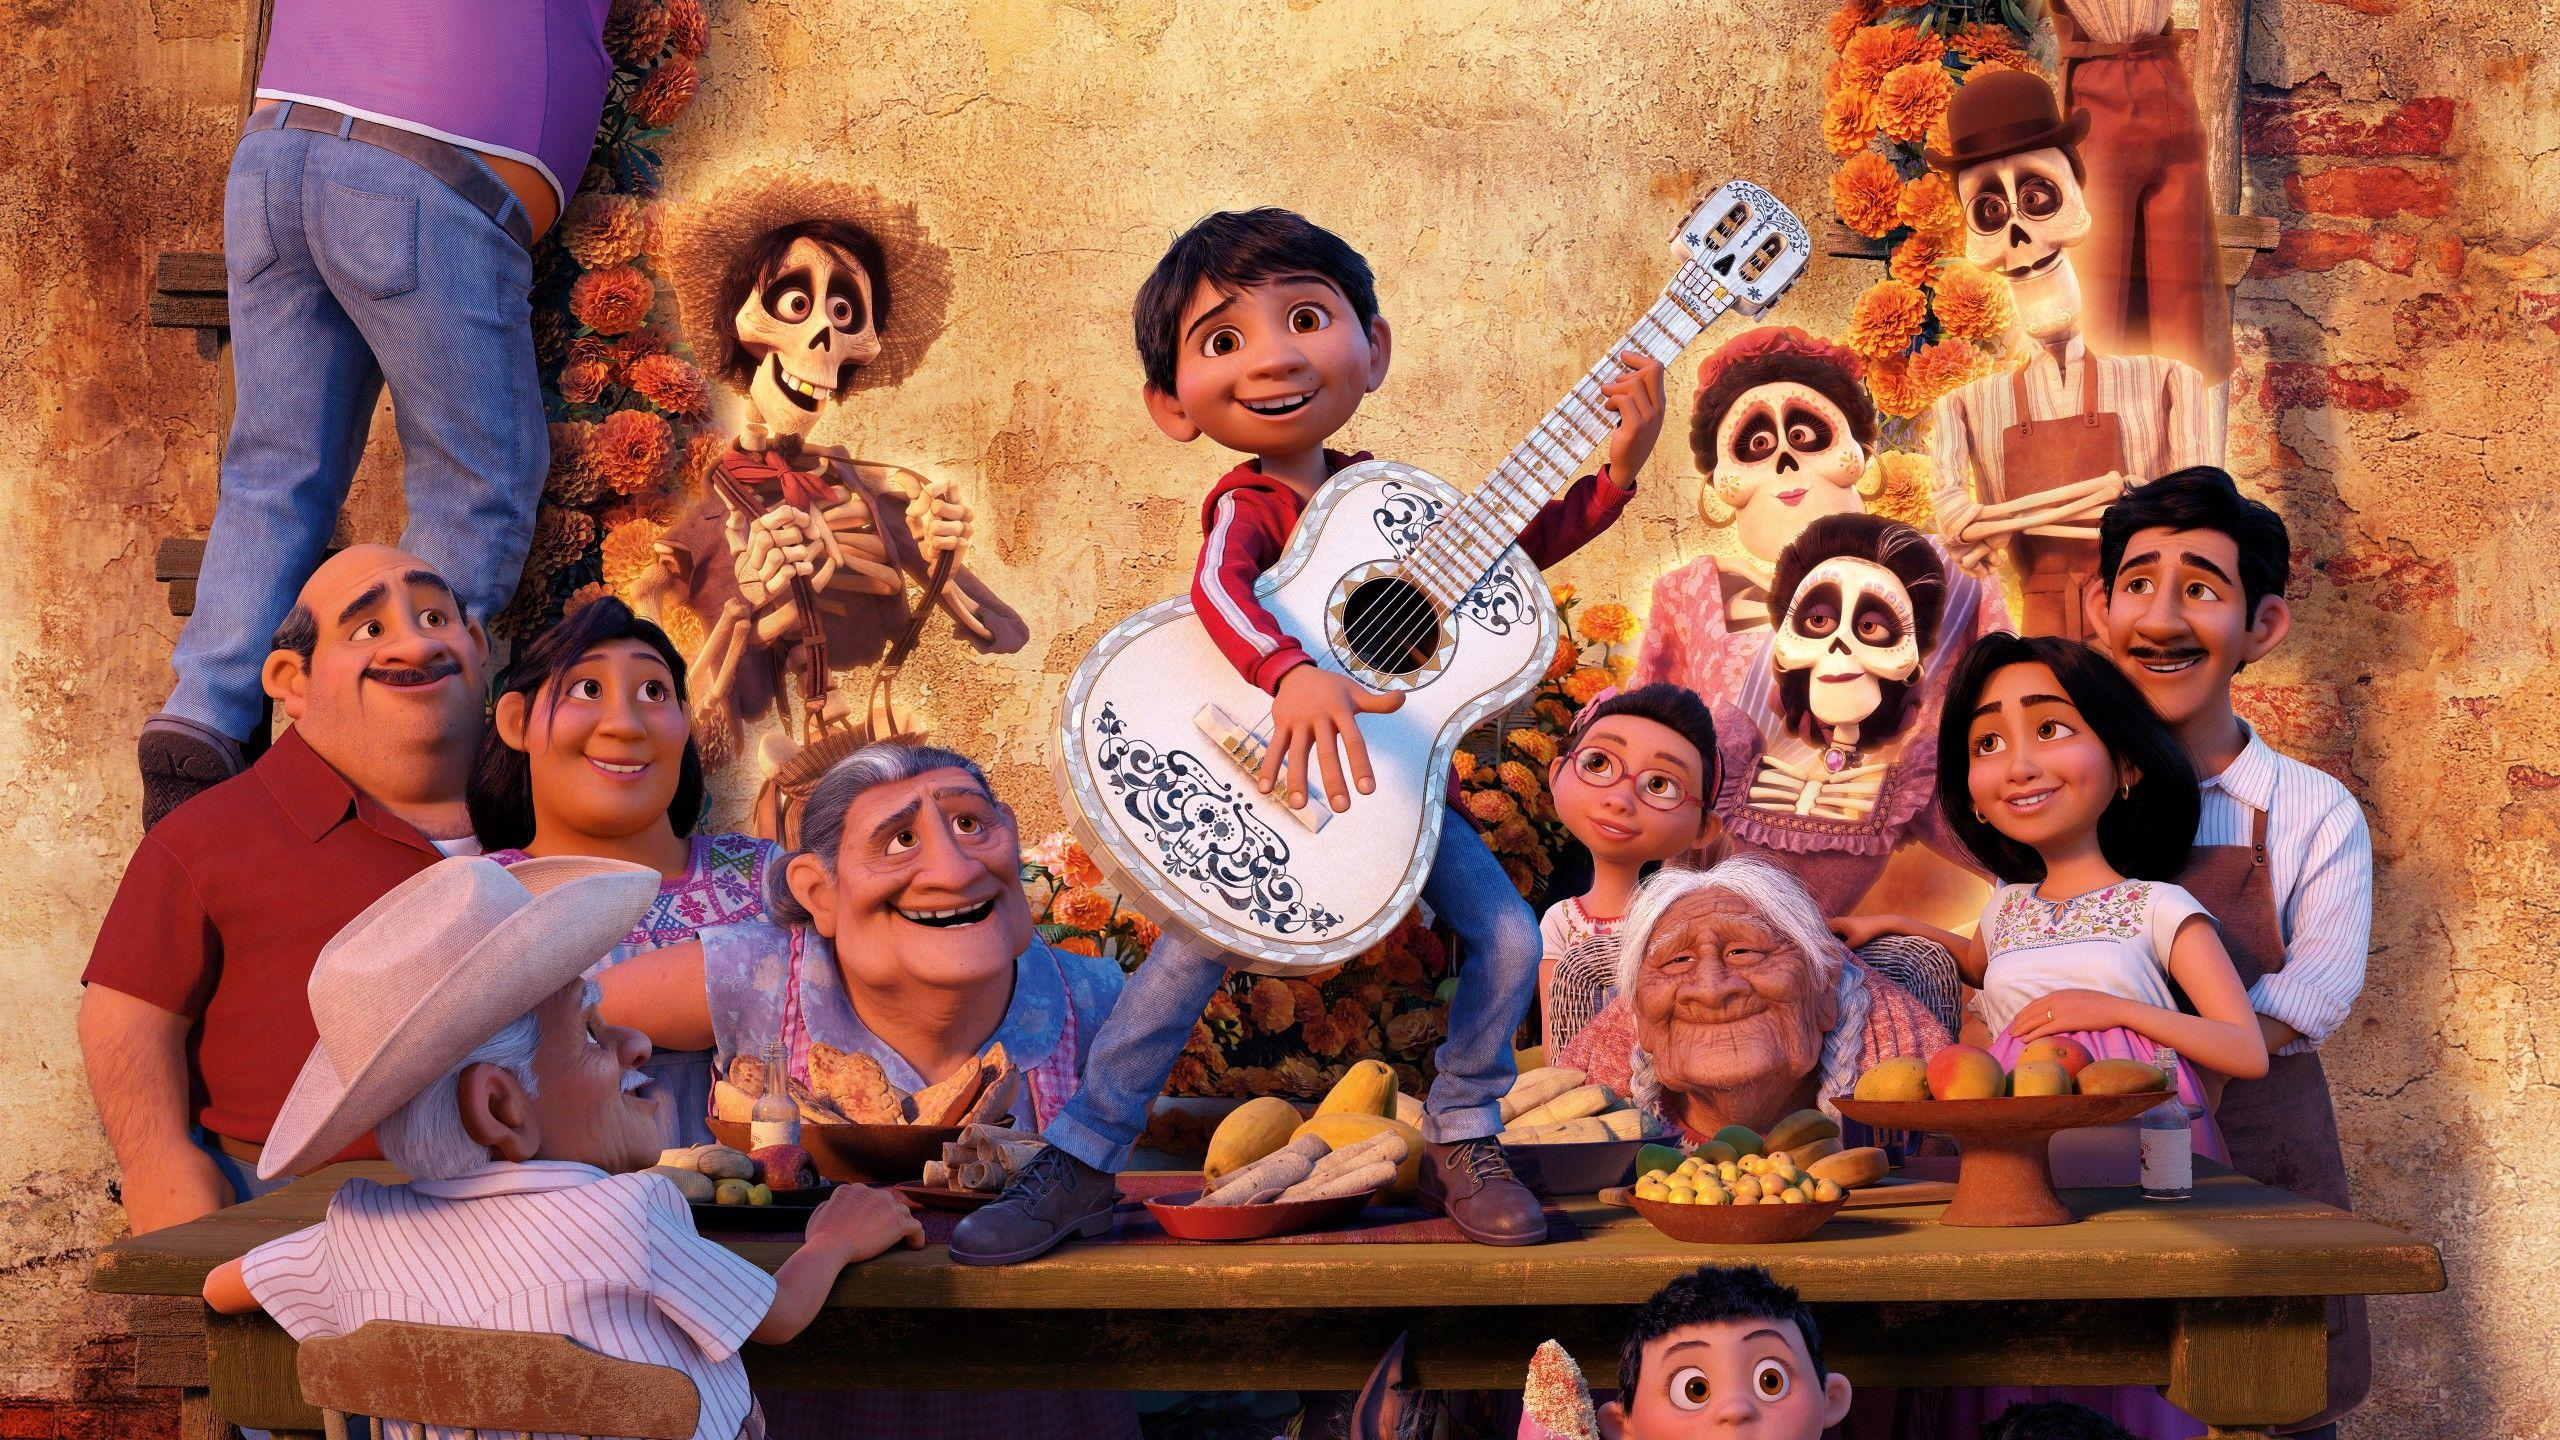 Wallpapers Coco, Pixar, Animation, HD, 5K, Movies,